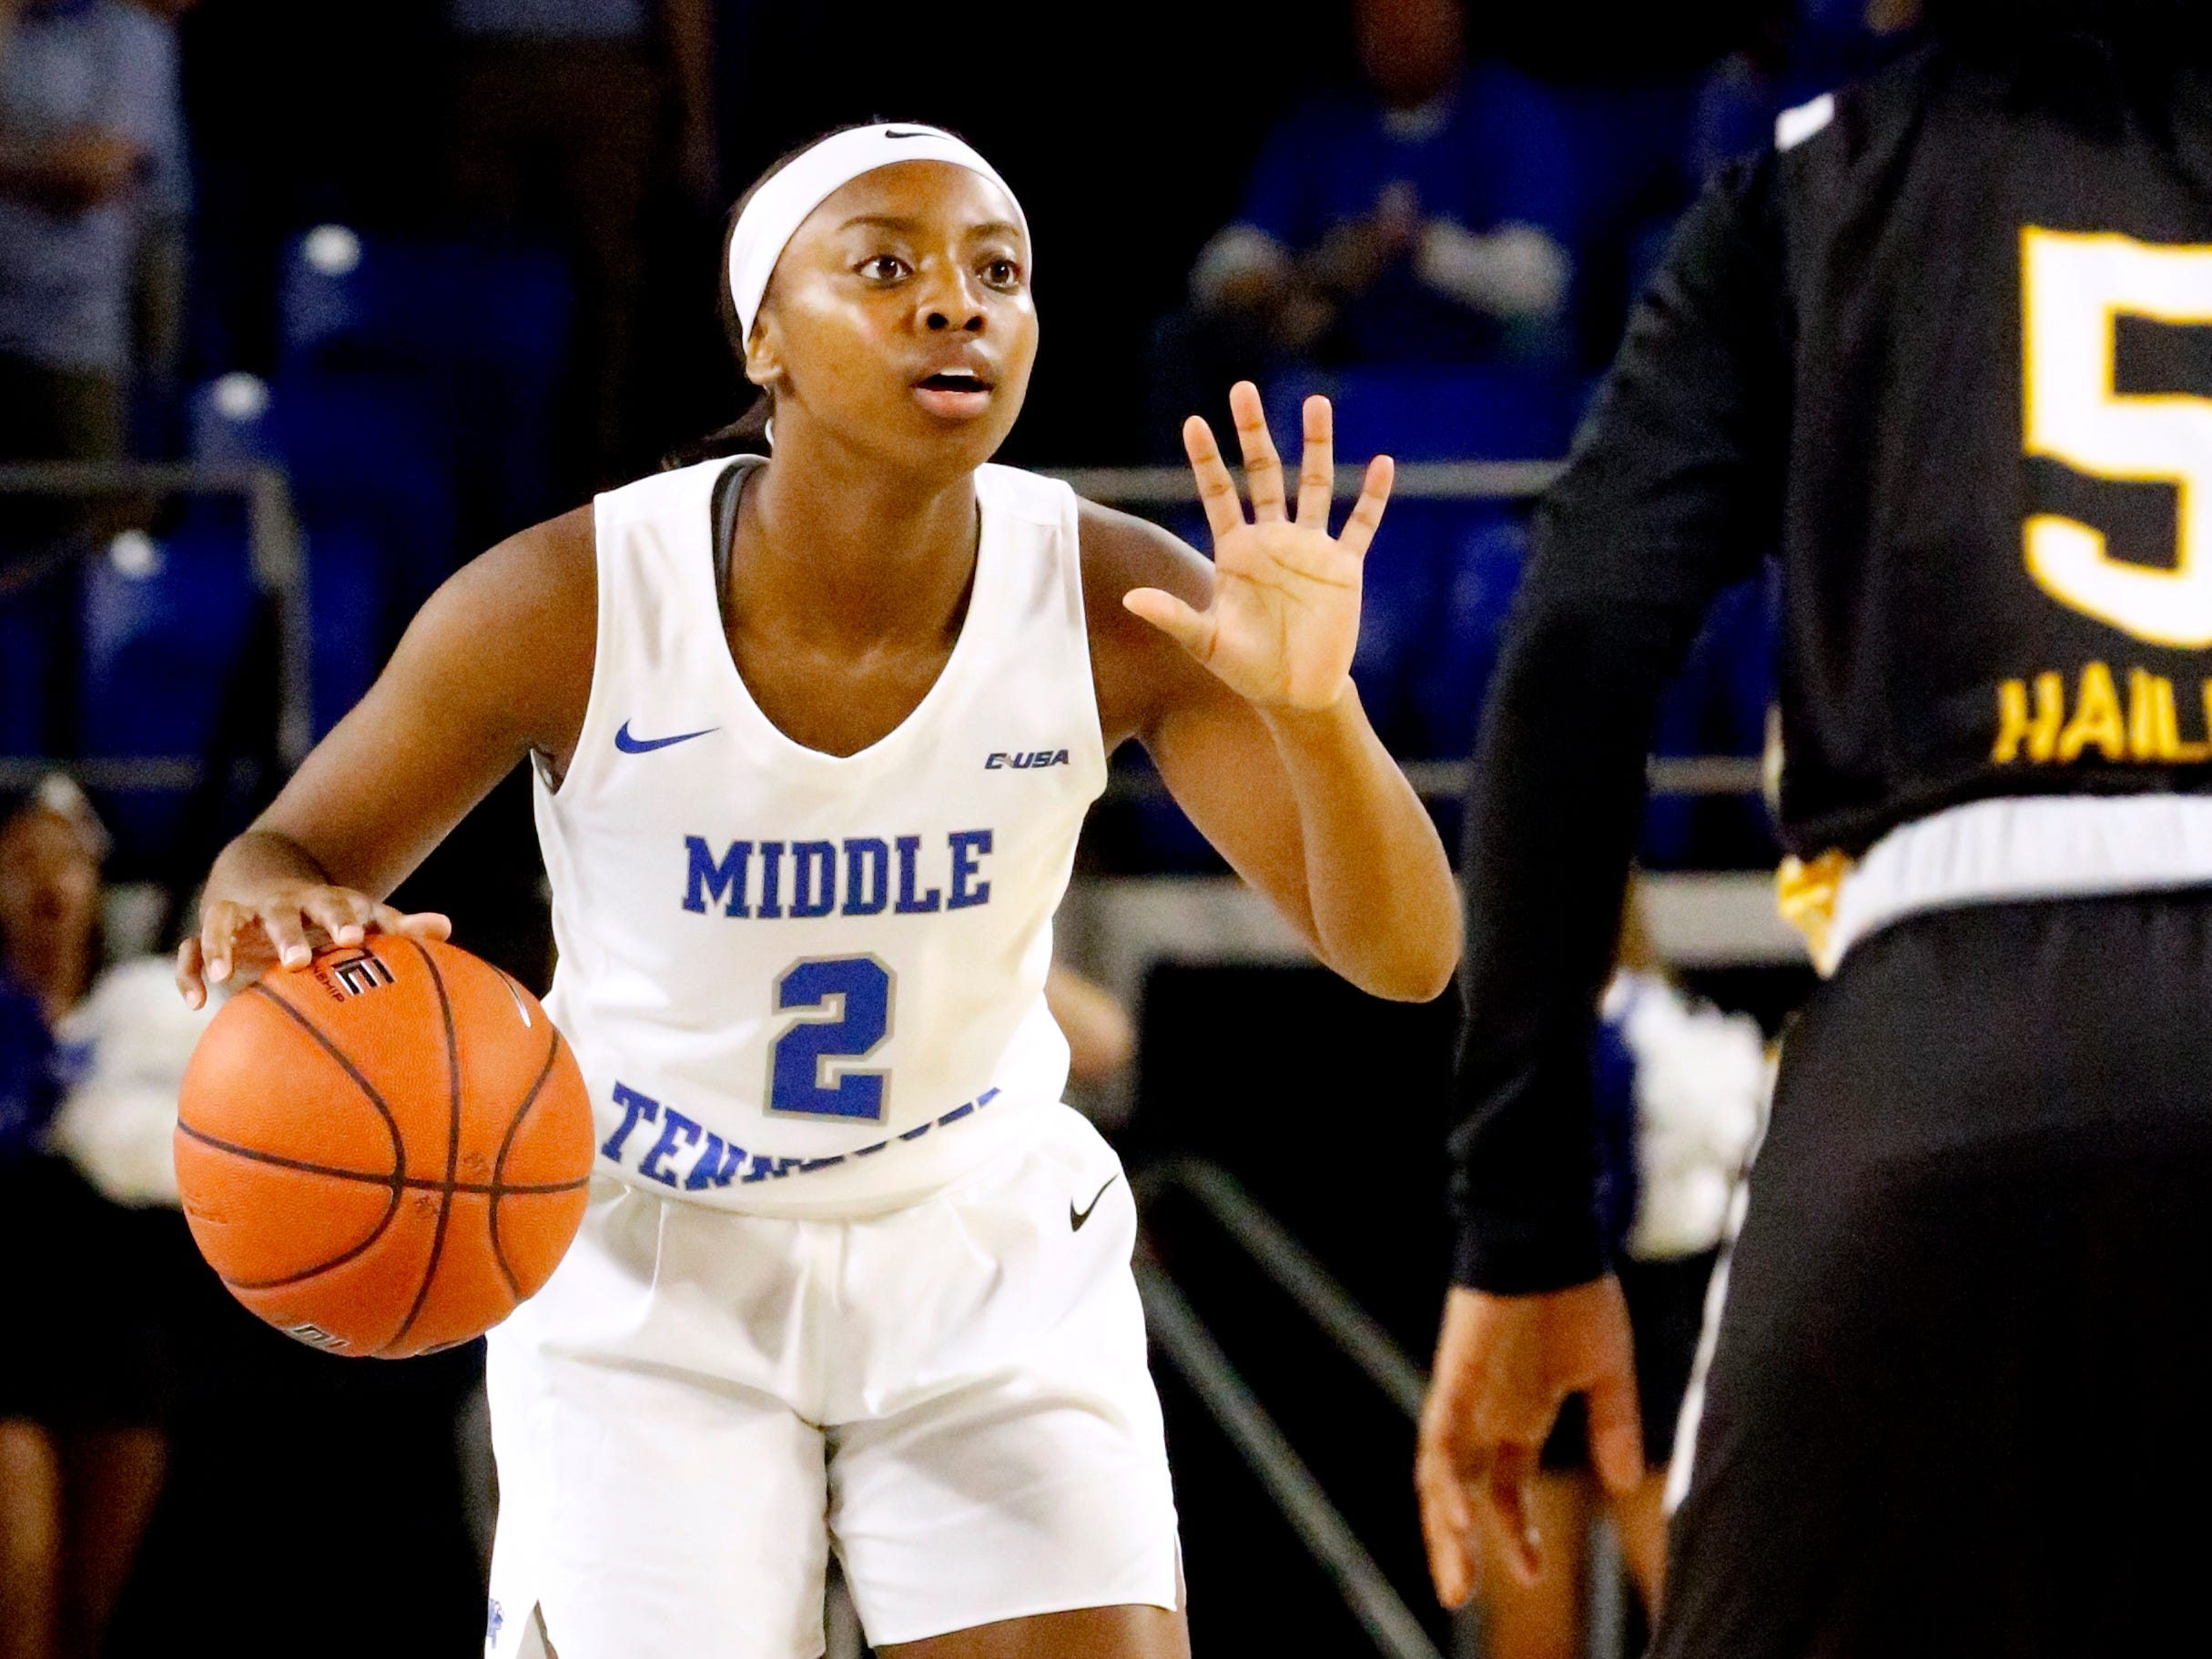 MTSU's guard Taylor Sutton (2) brings the ball down the court during the game against Southern Miss on Thursday Jan. 10, 2019.